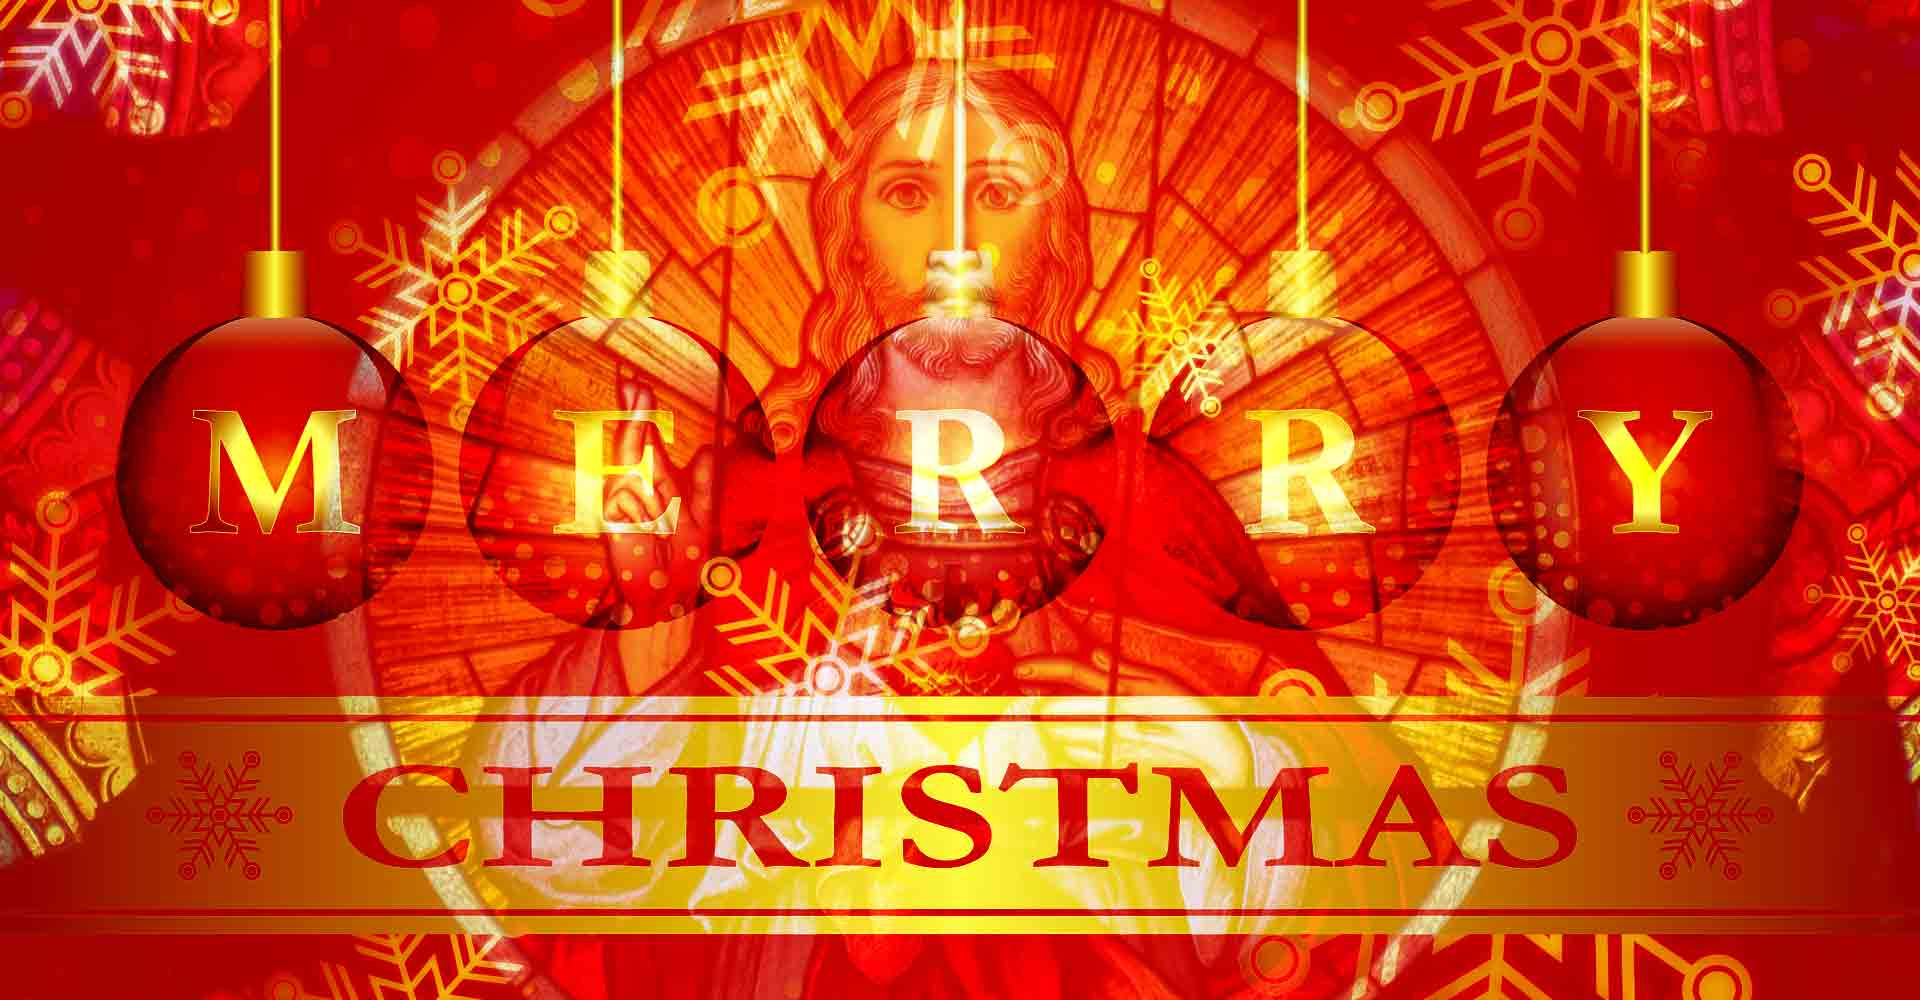 Christ is the meaning of Christmas